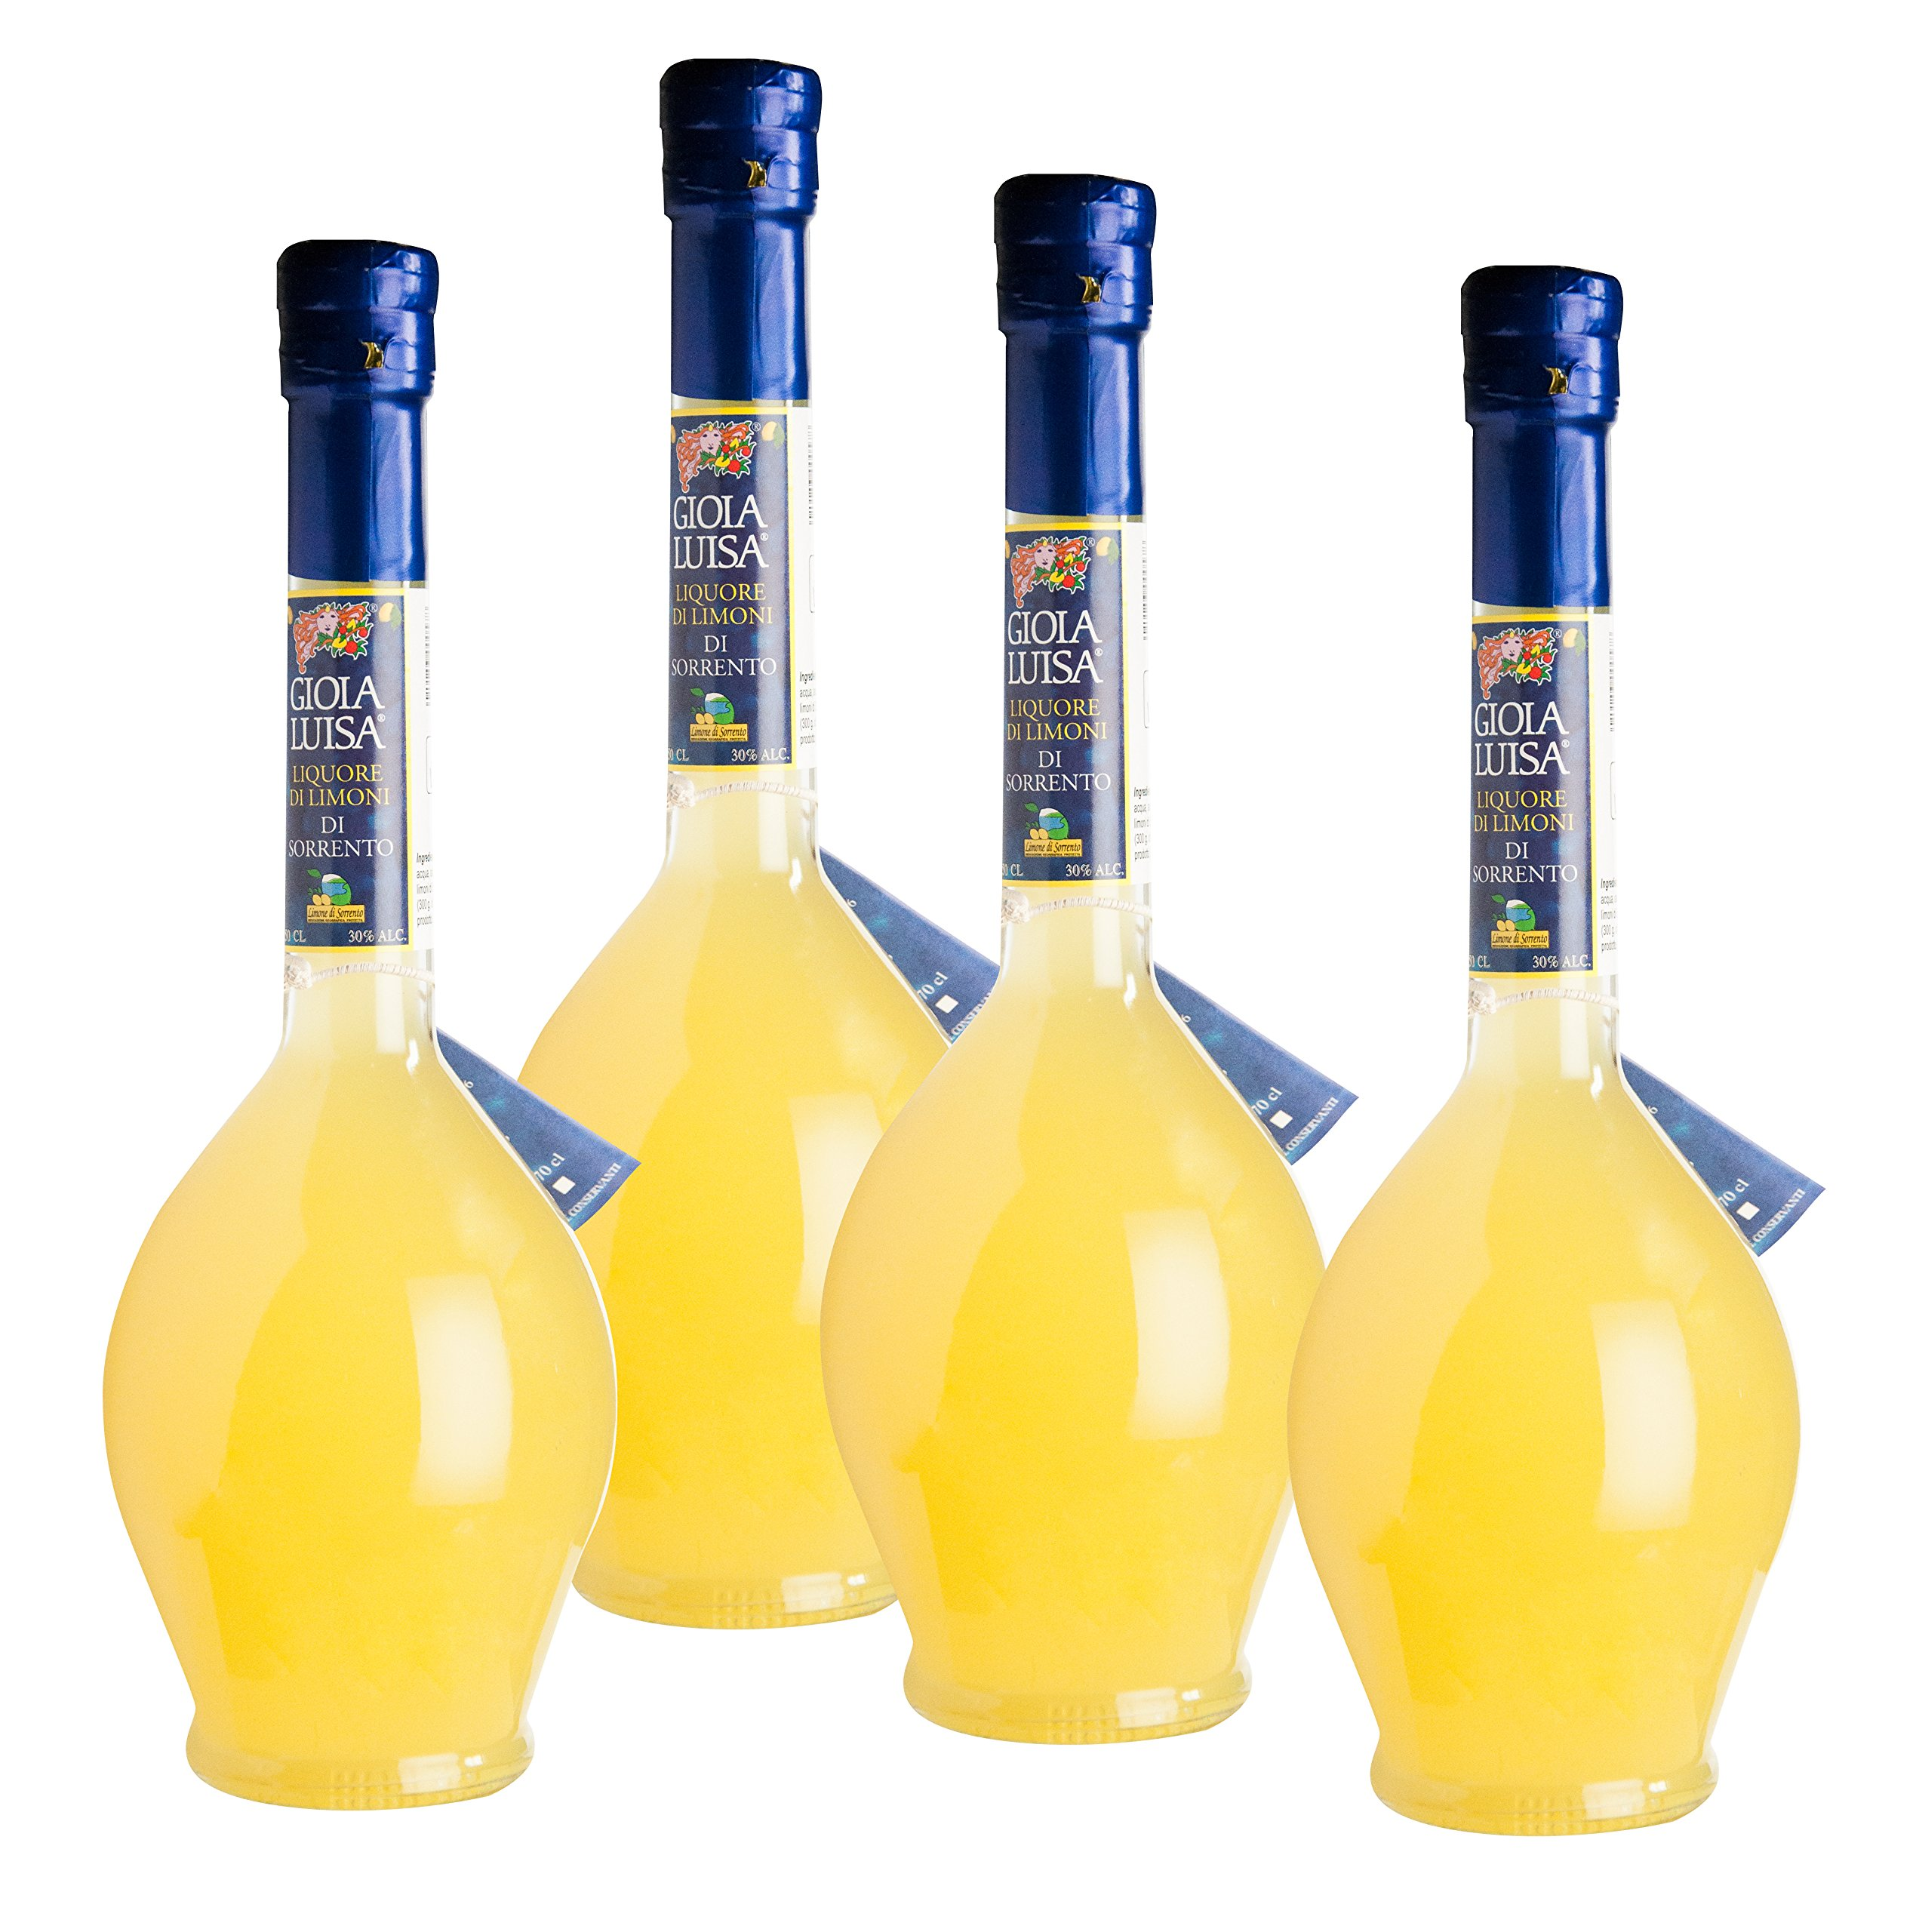 Limoncello of Sorrento Gioia Luisa (Pack 4 Bottles)